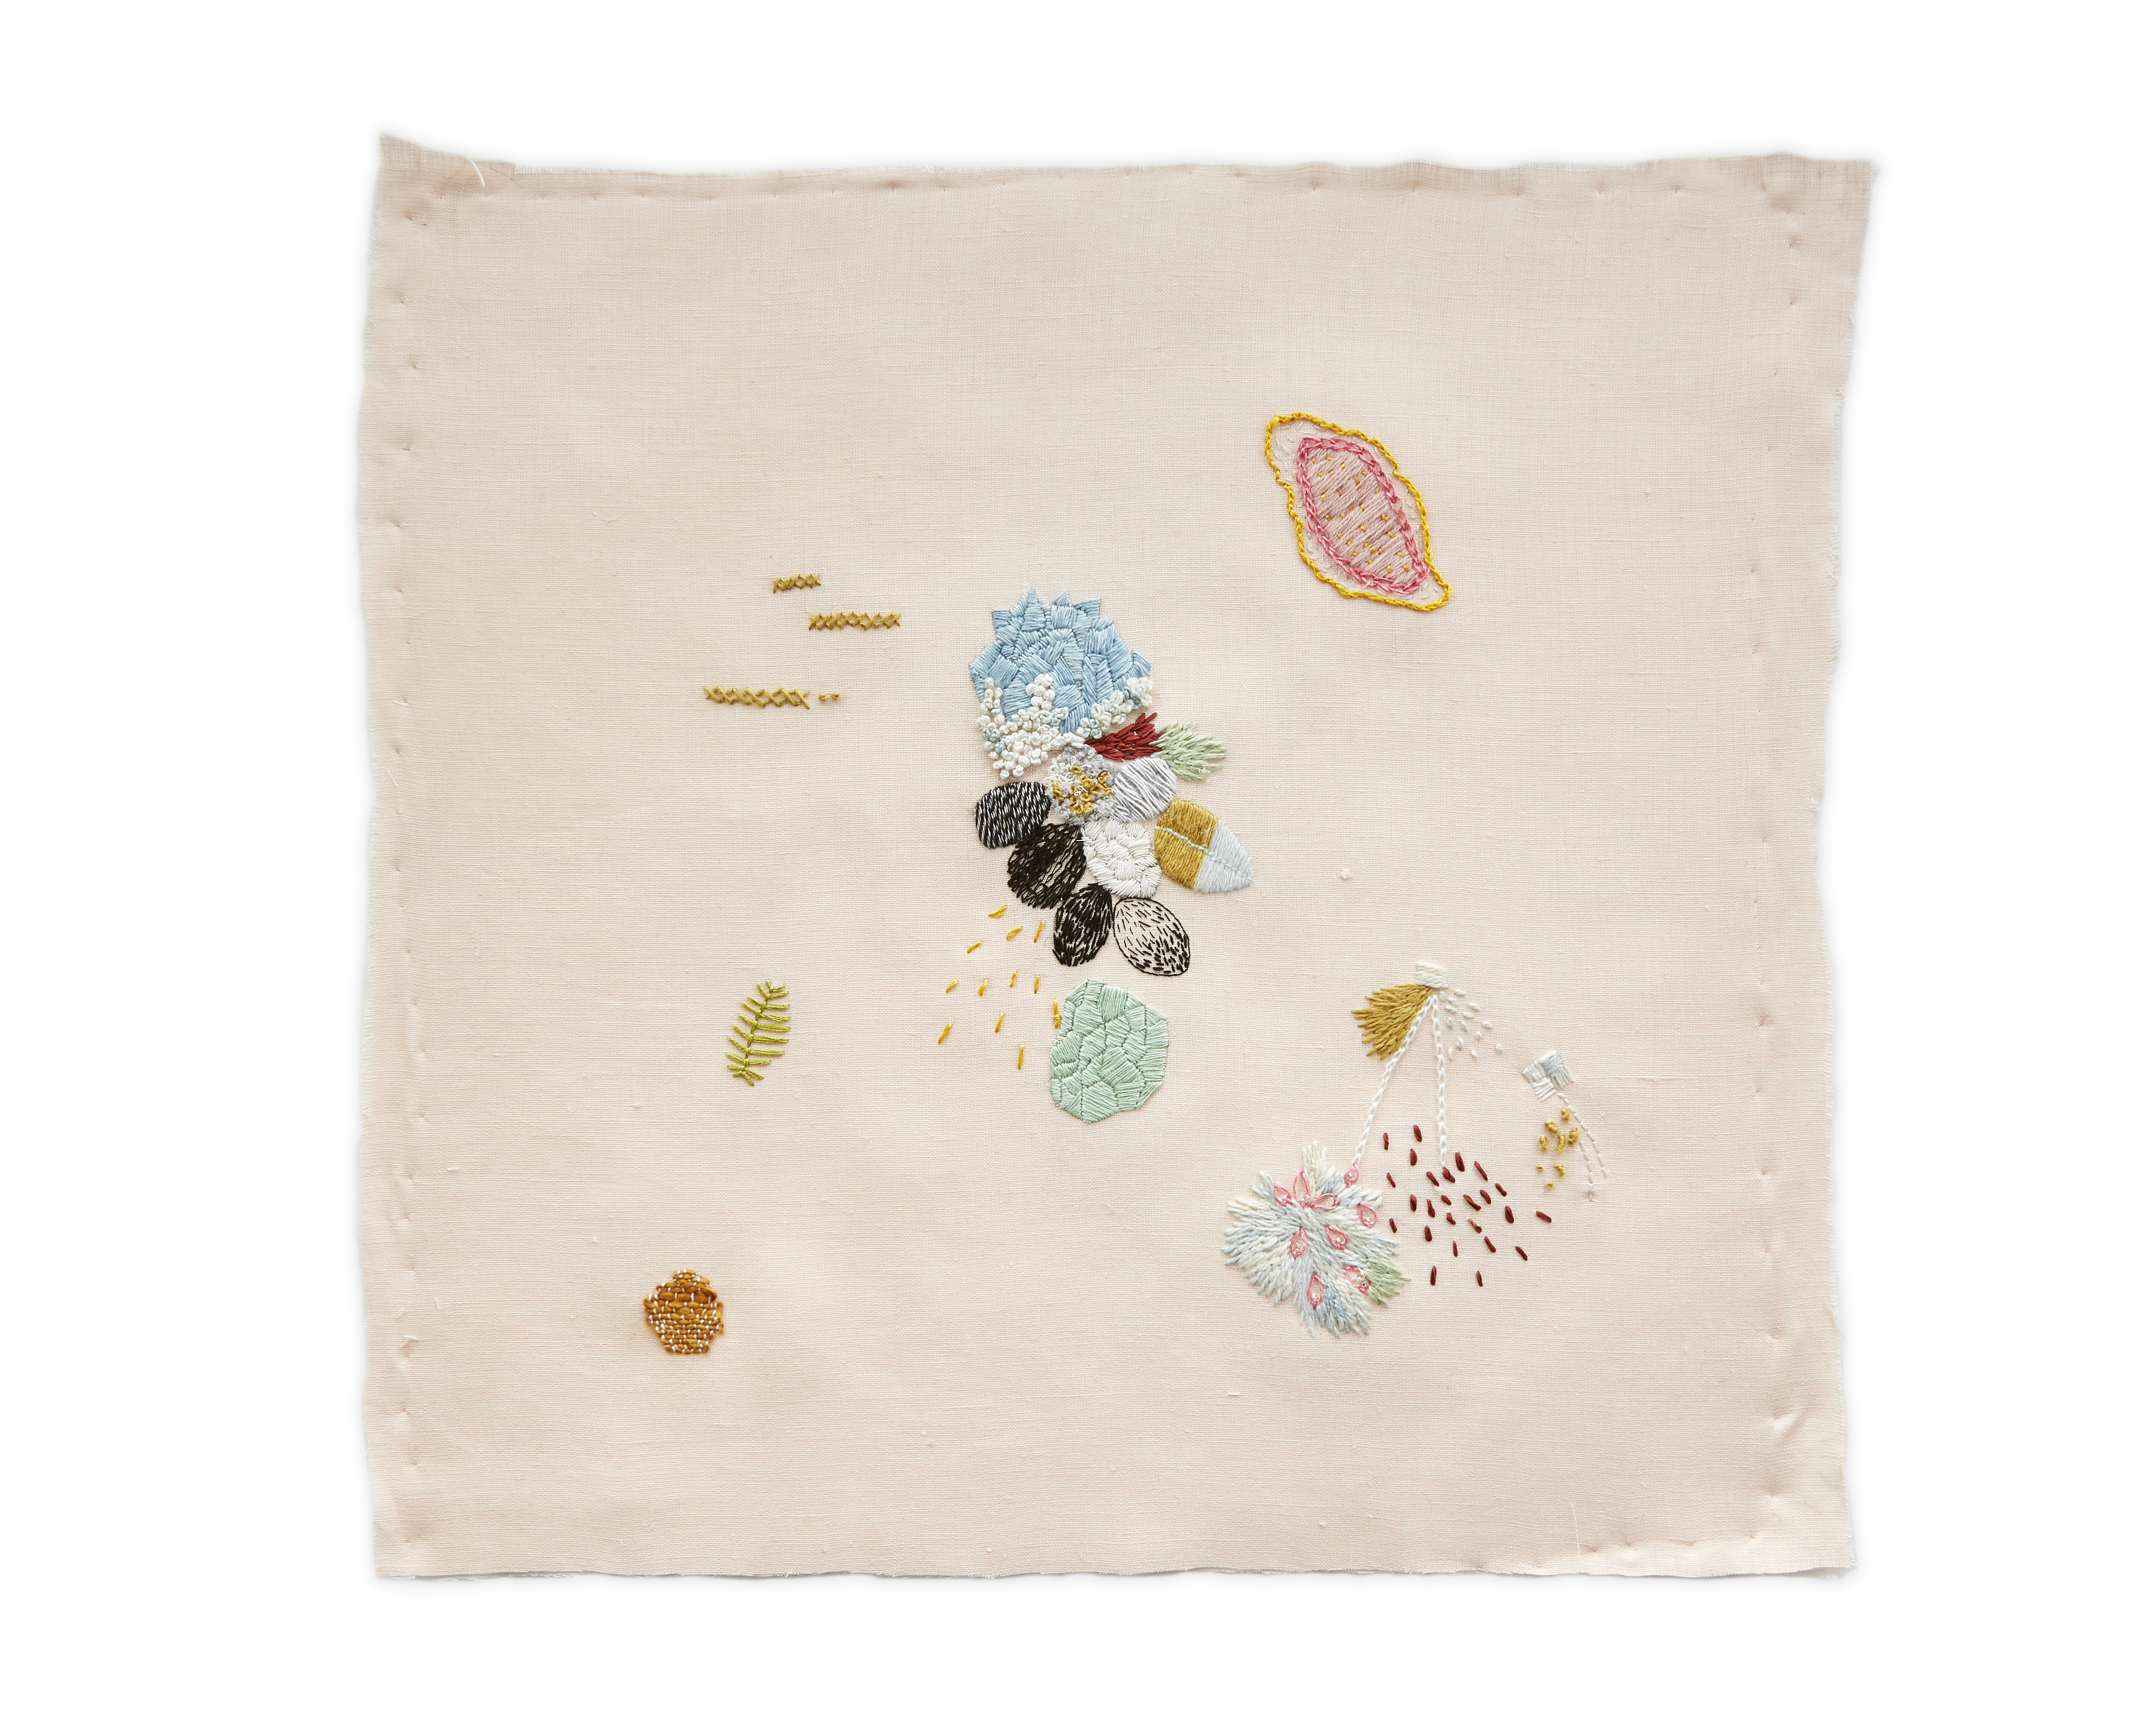 Lyndsey McDougall embroidery